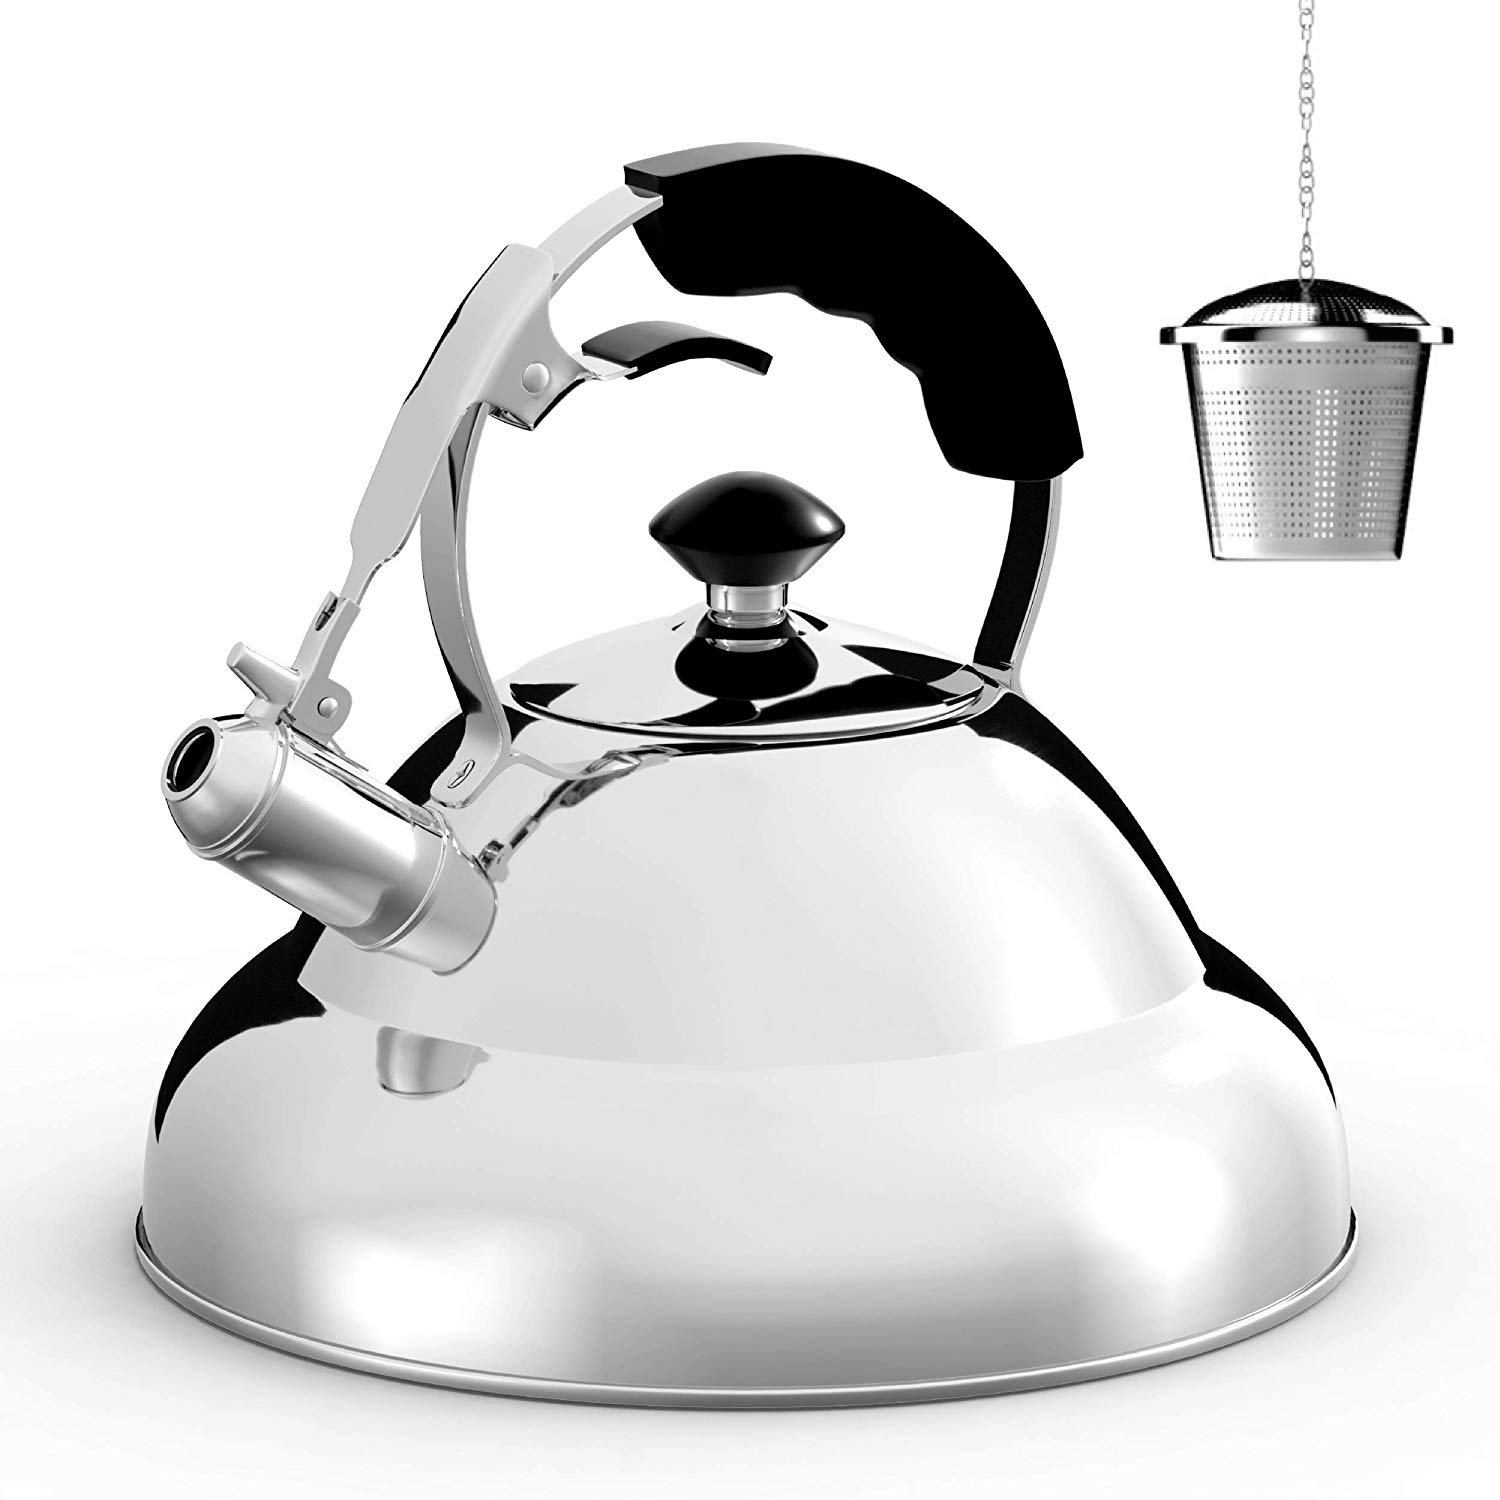 Willow and Everett Surgical Whistle Teapot With Capsule Bottom and Mirror Finish